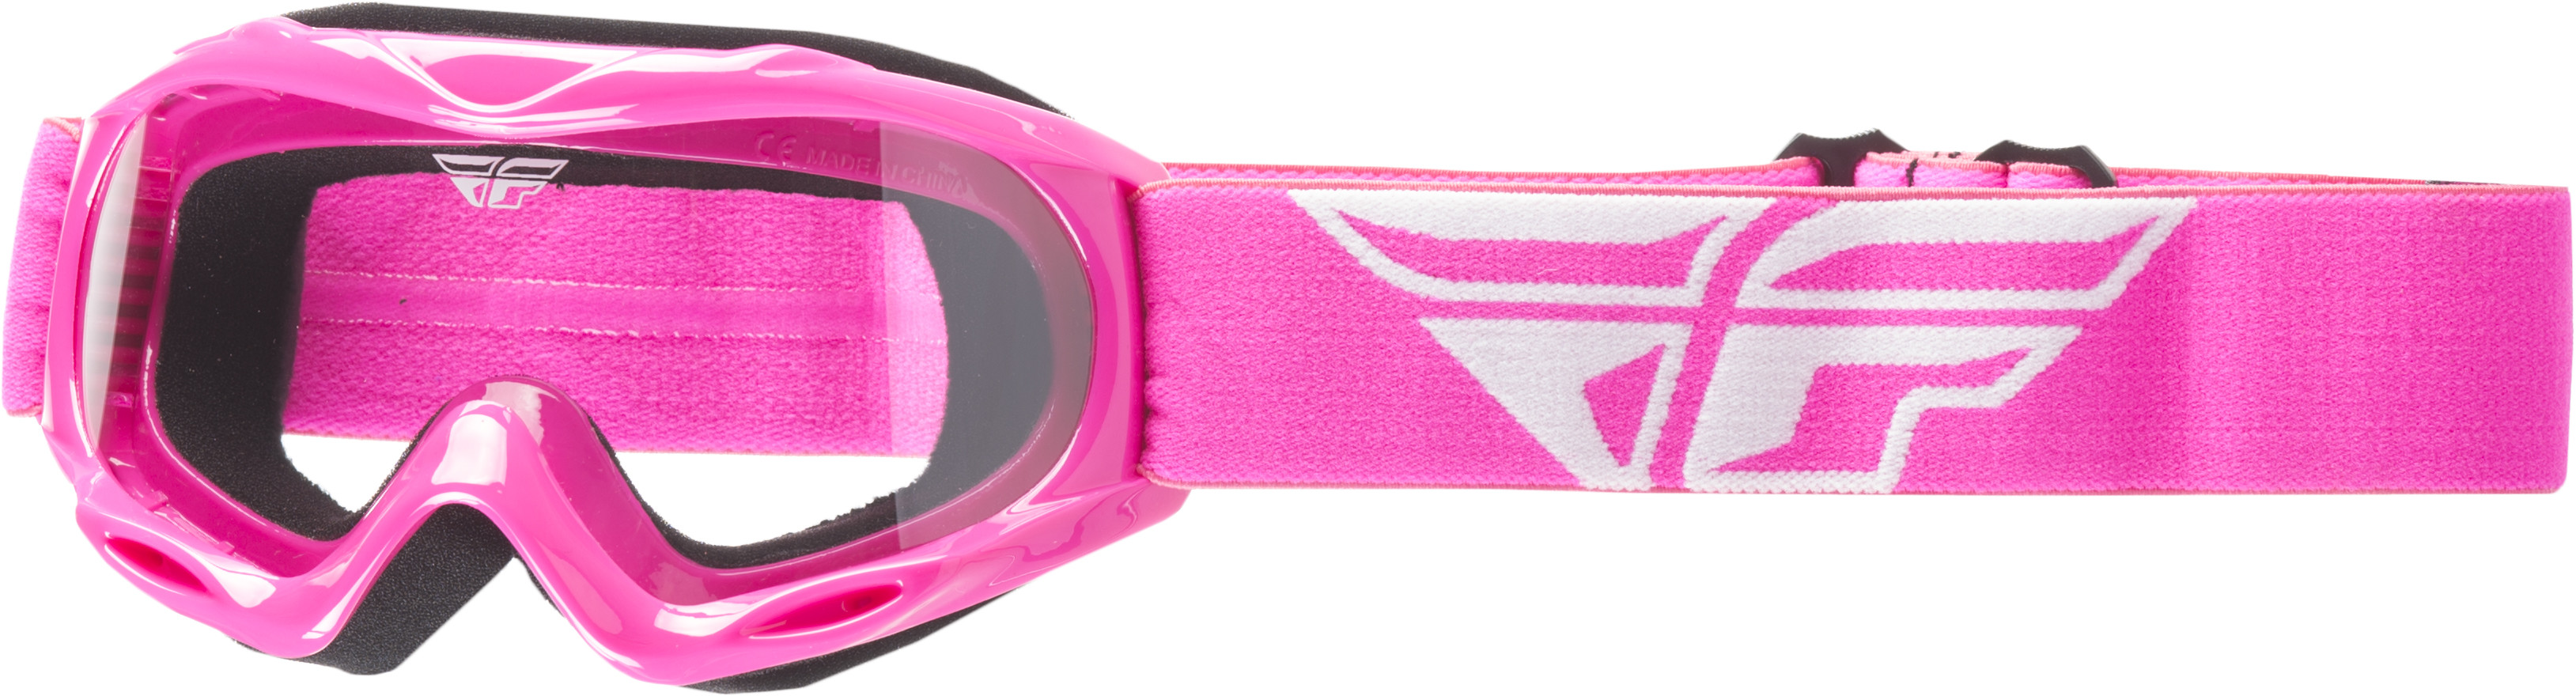 Focus Youth Goggle Pink W/ Clear Lens